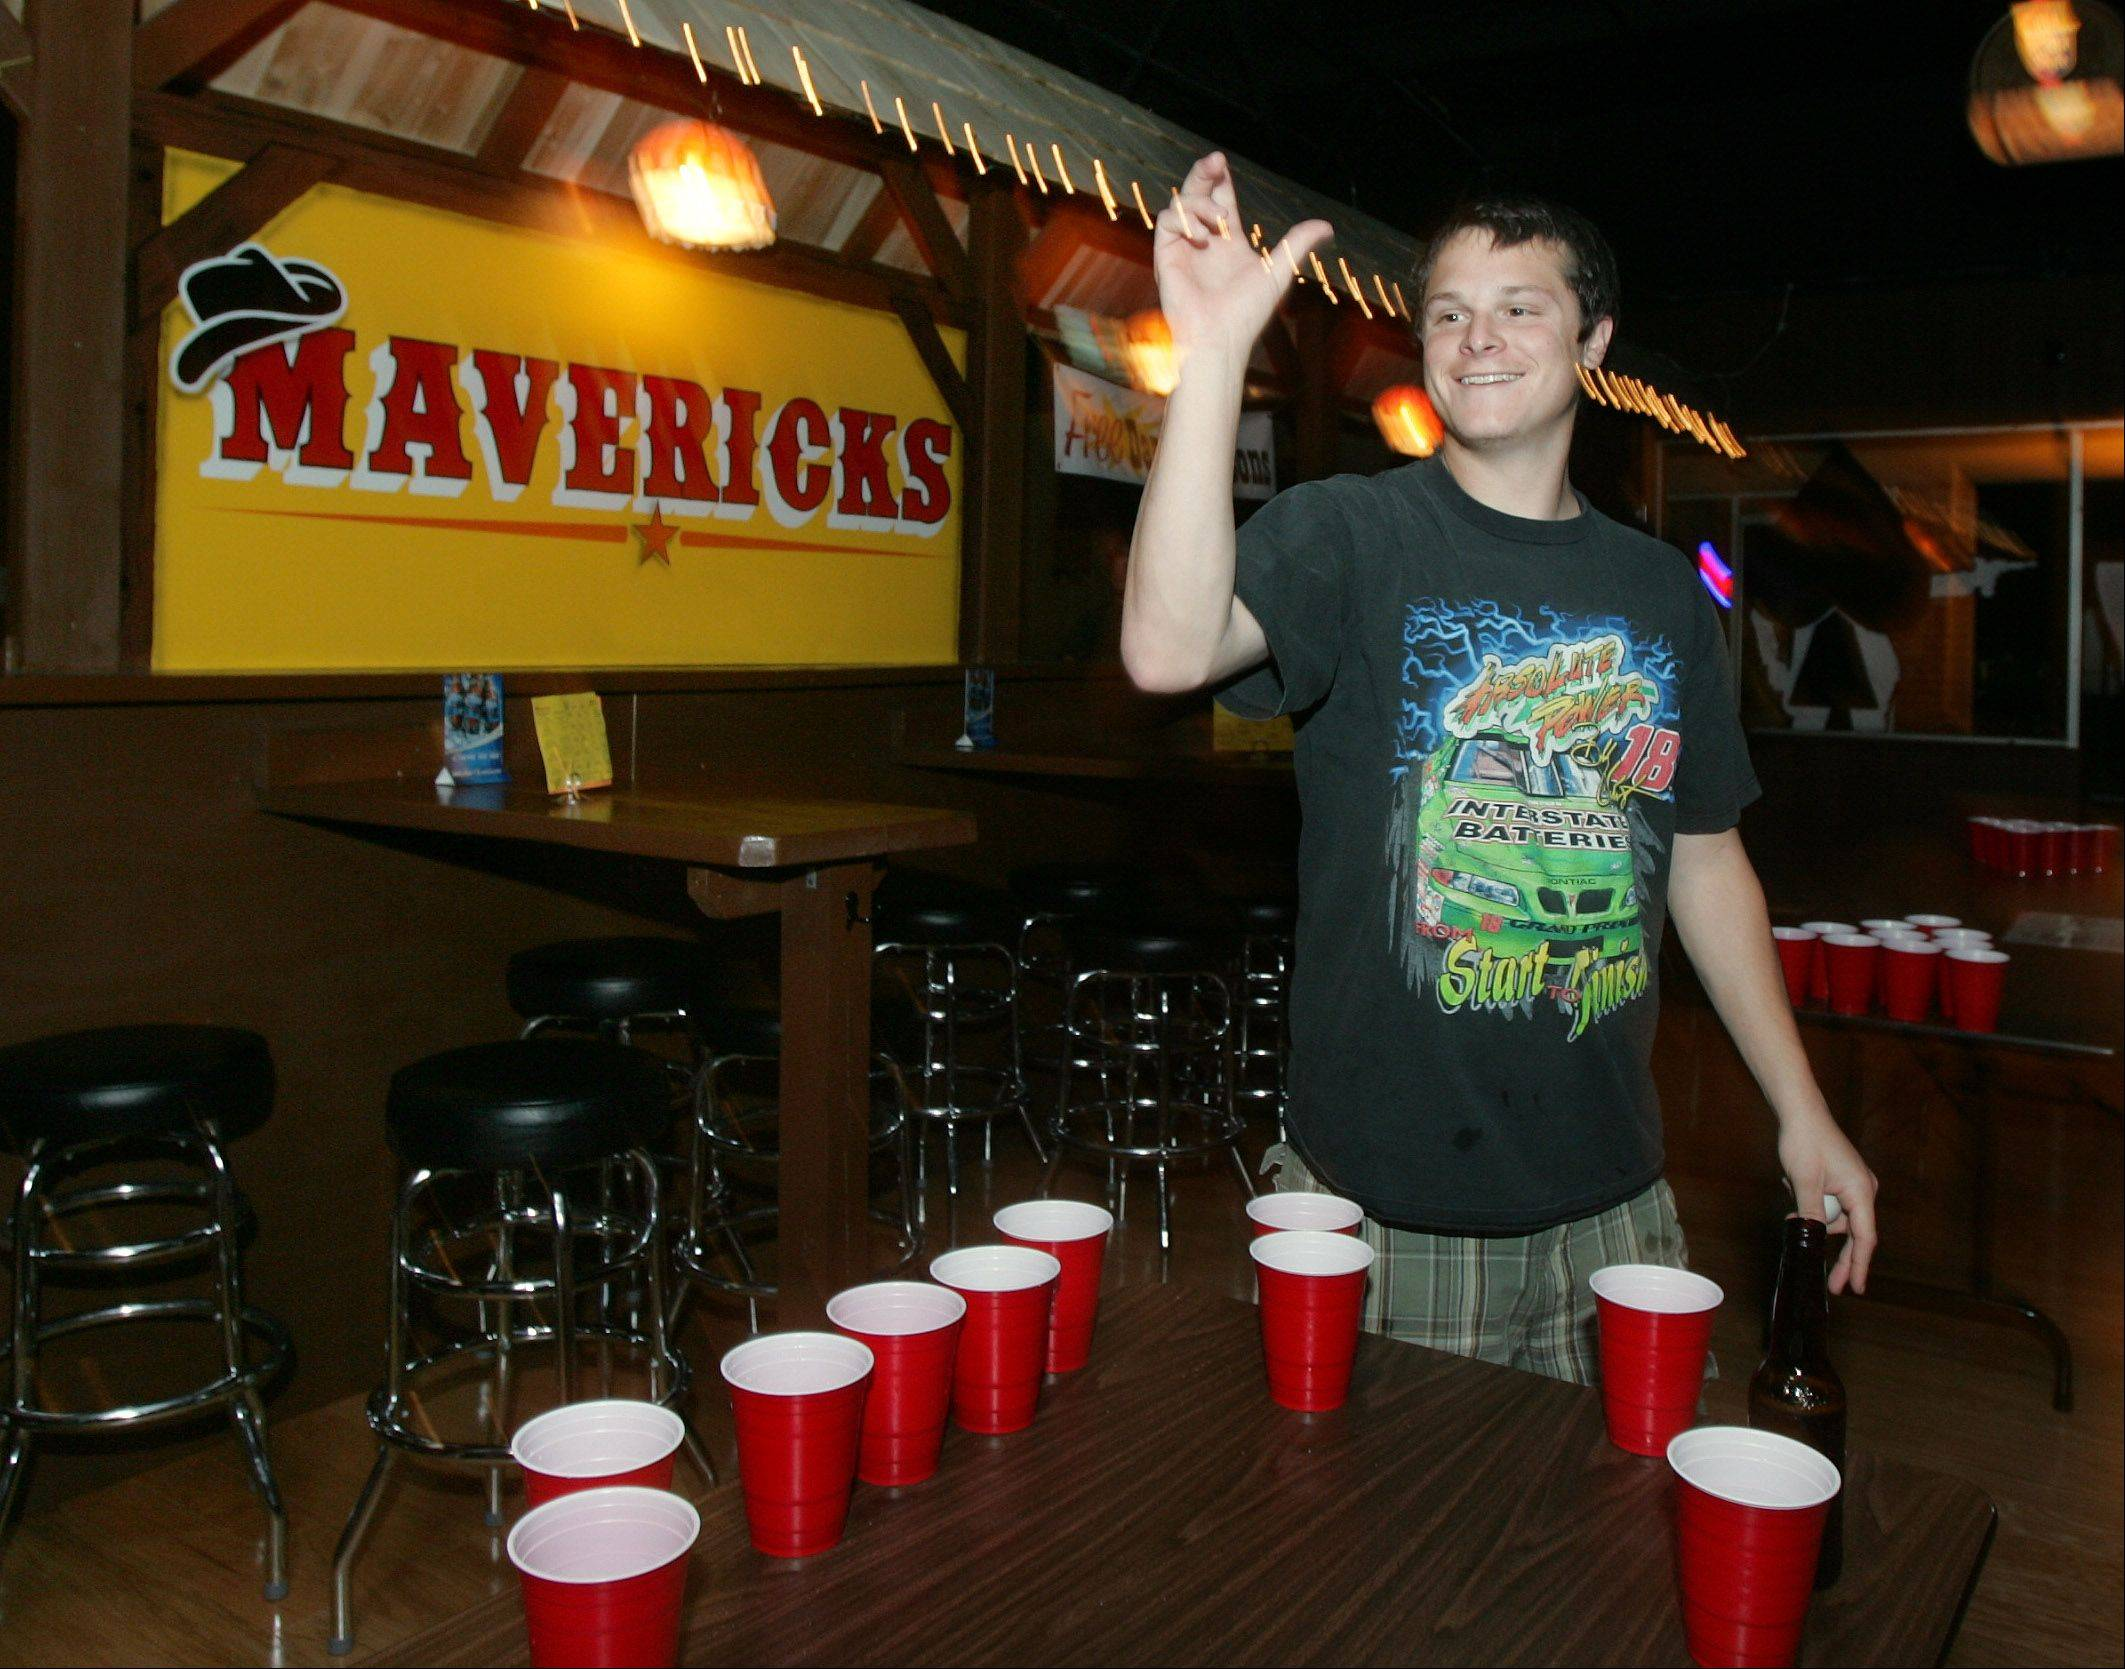 David Nelson of Libertyville plays water pong at Mavericks.